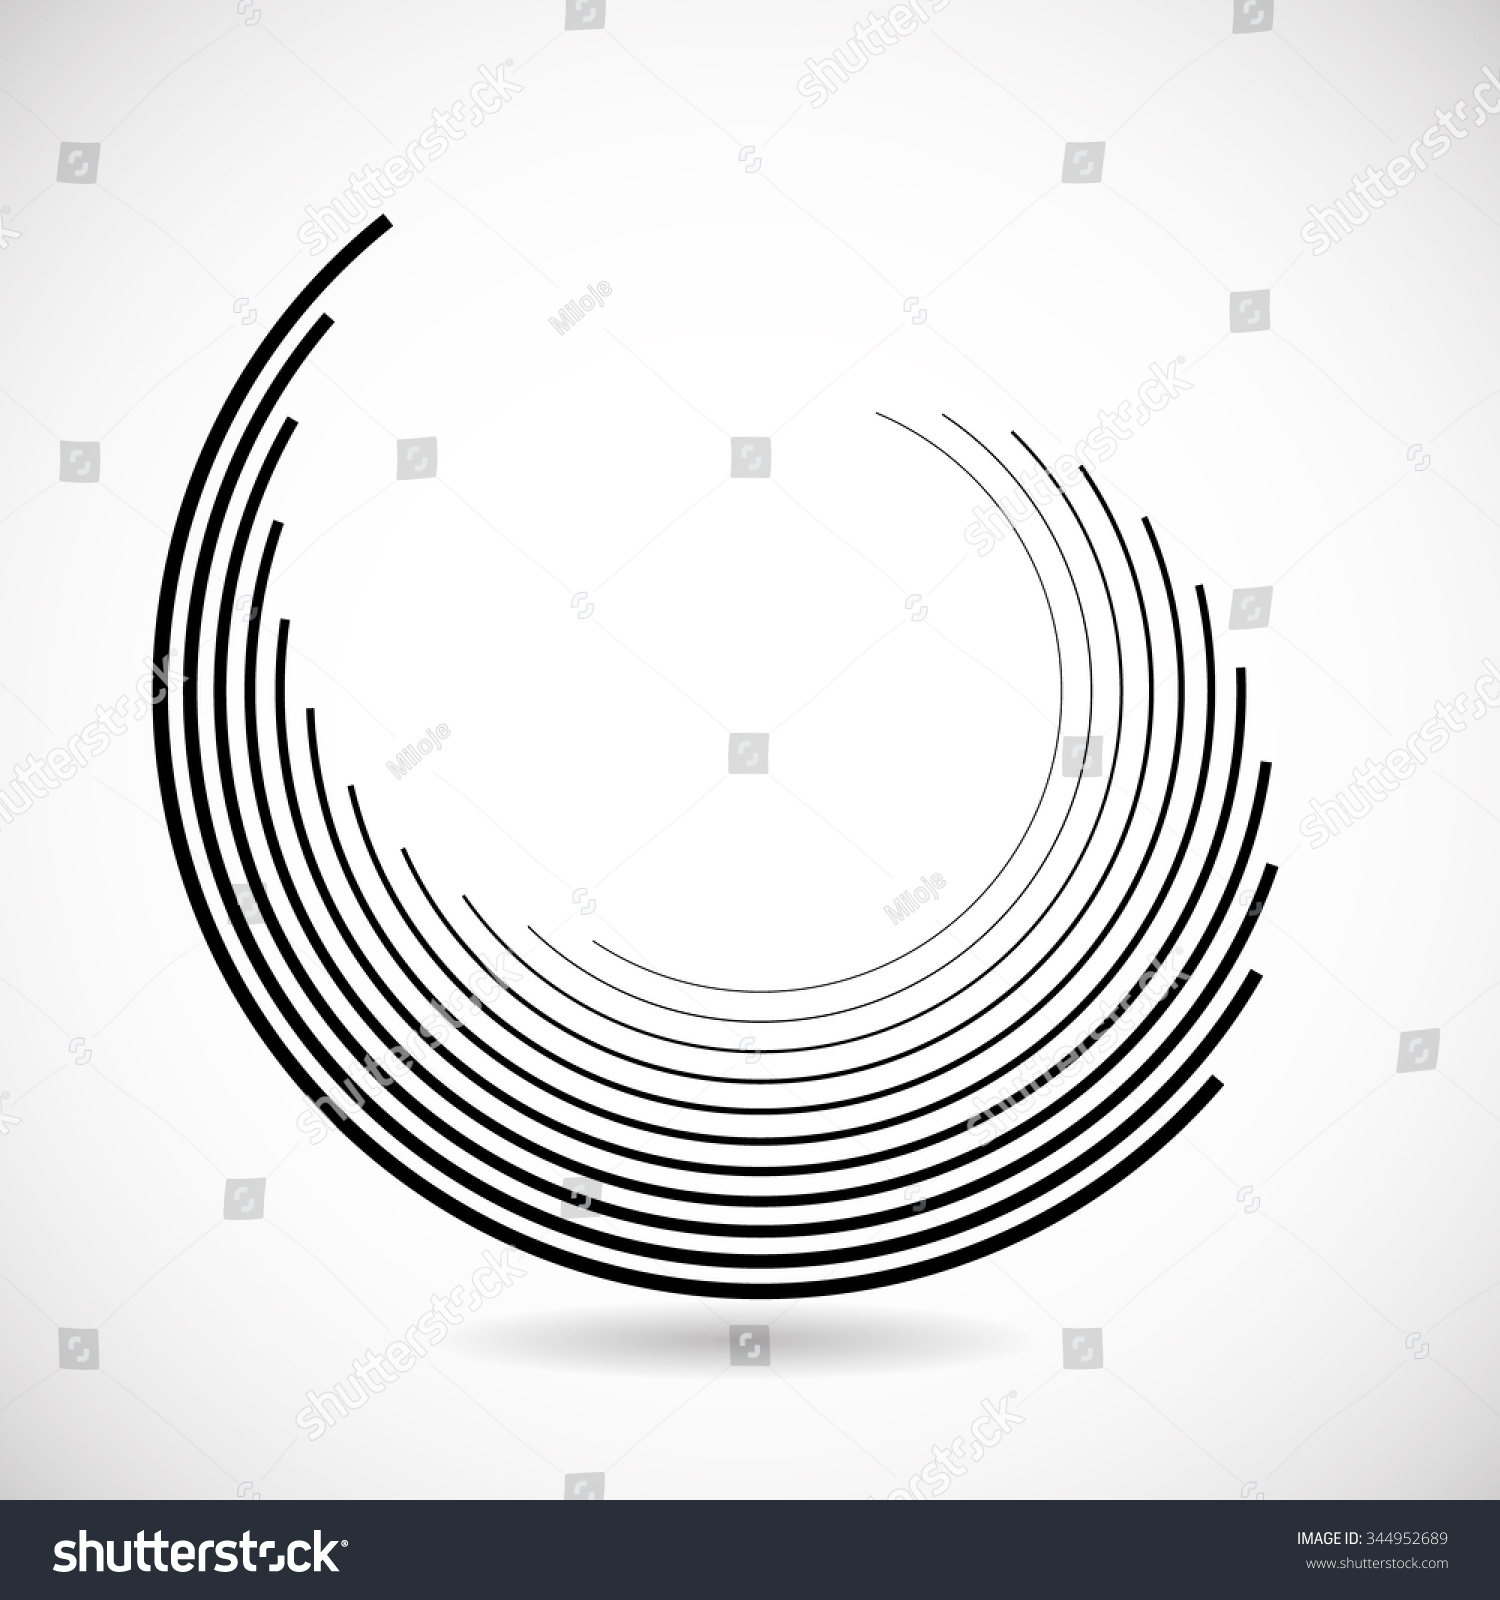 Technology Lines Circle Form Vector Illustration Stock Vector ...